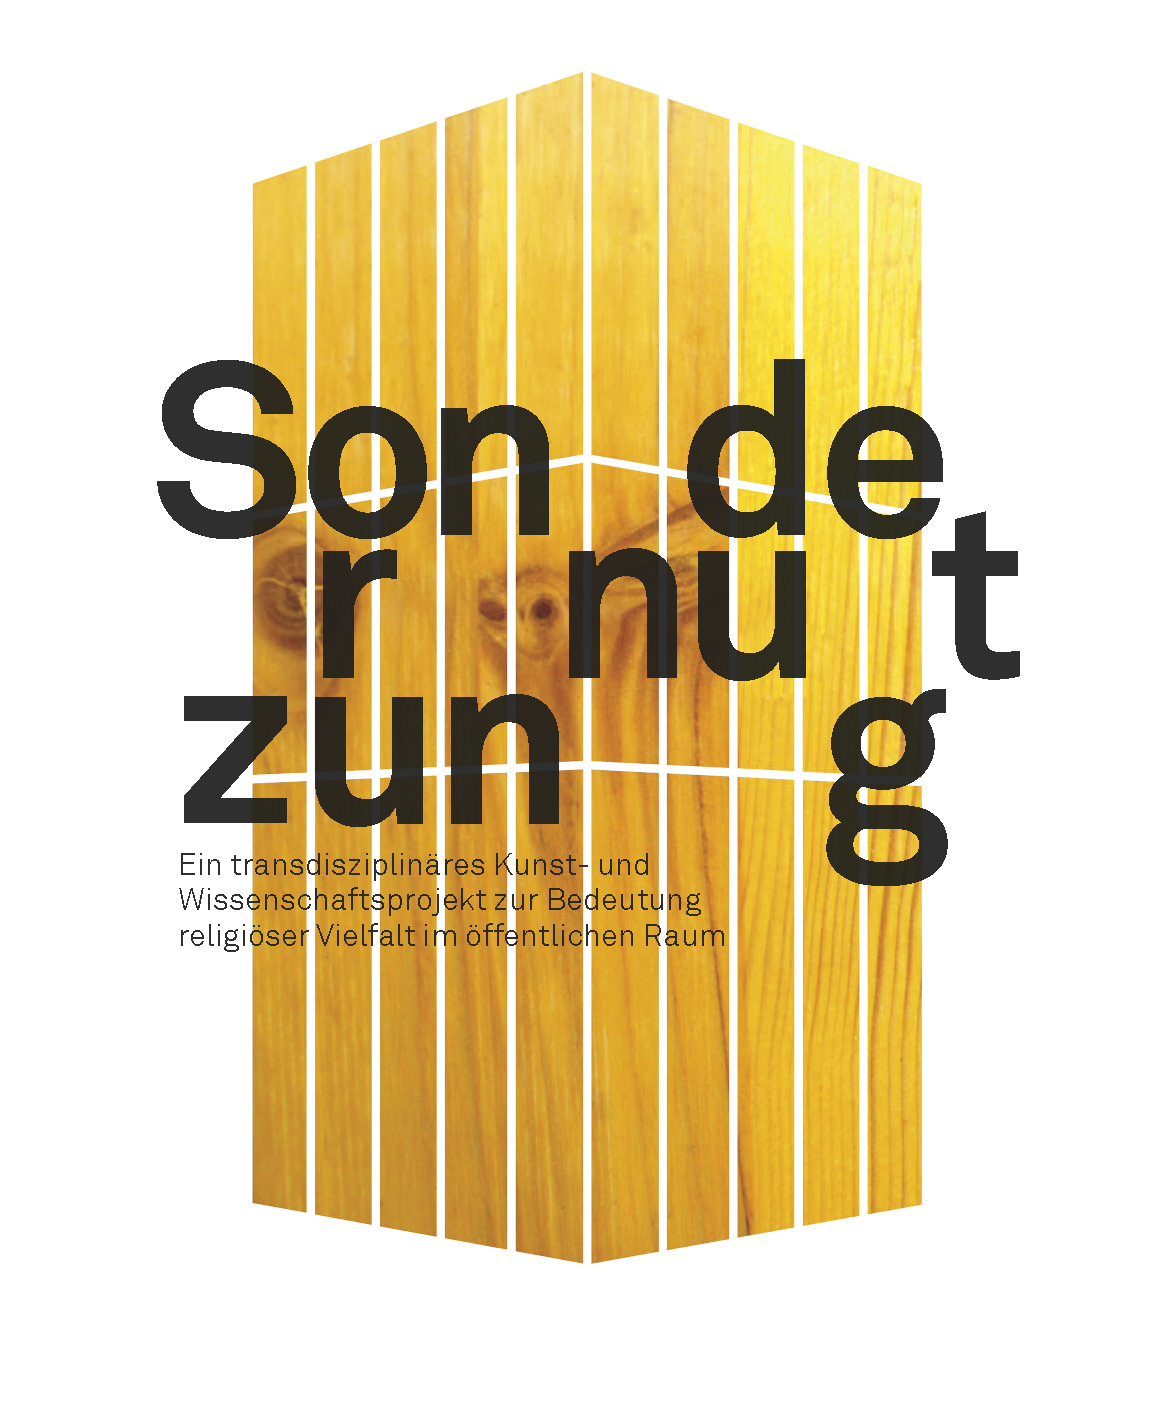 SONDERNUTZUNG – A Transdisciplinary Project Combining Art and Science to Evaluate the Meanings of Religious Diversity in Public Space